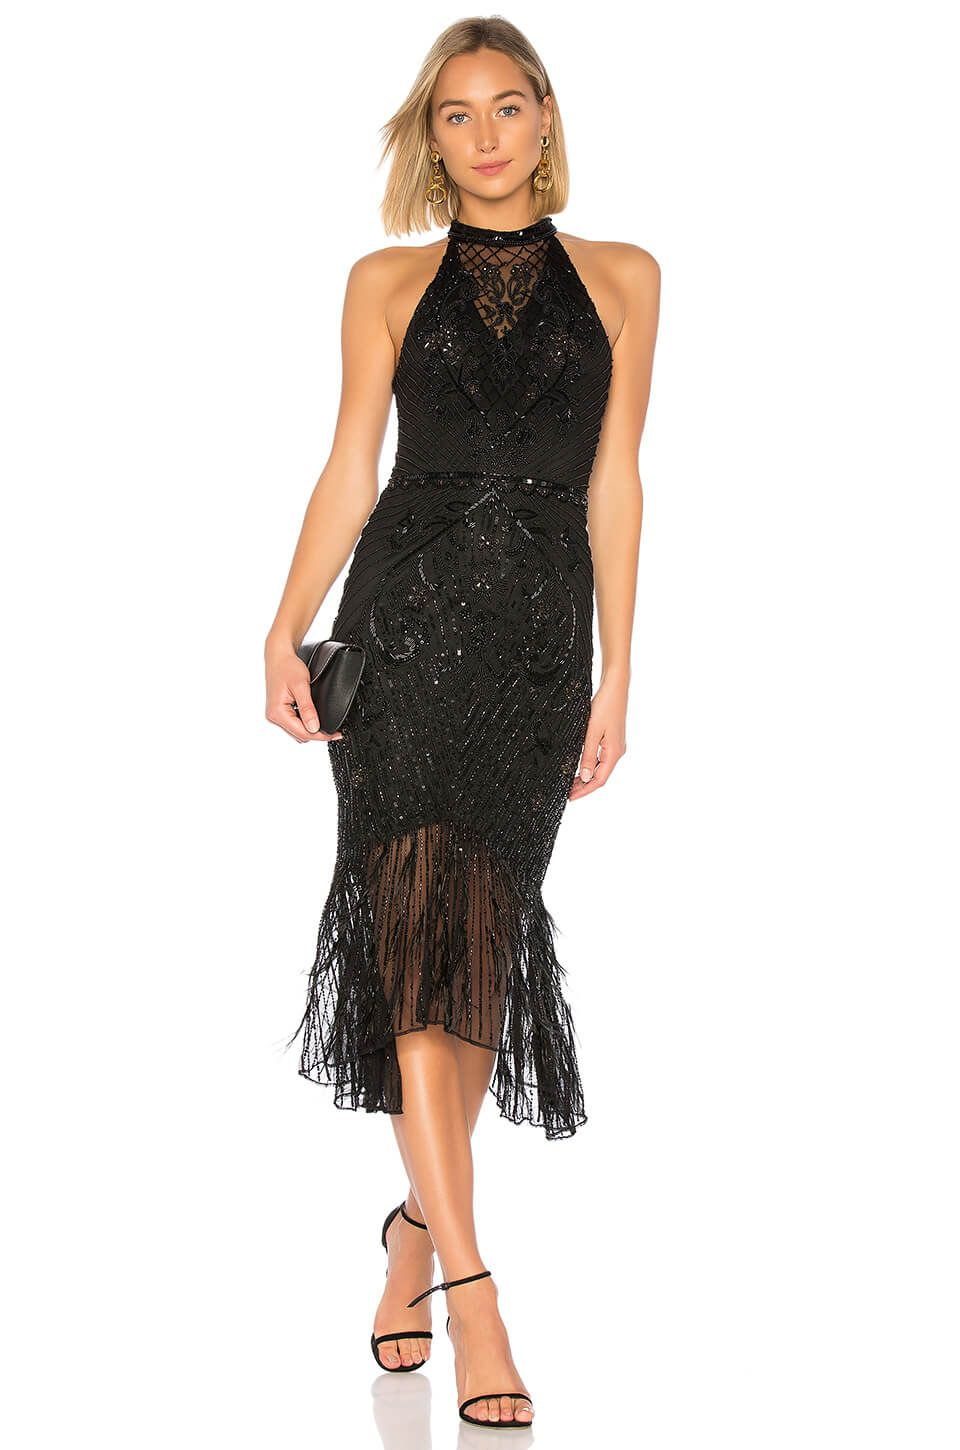 21 Revolve Dresses That Are Bonafide Head Turners I Am Co Revolve Dresses Hole Dress Sun Dress Casual Save on a huge selection of new and used items — from fashion to toys, shoes to electronics. pinterest